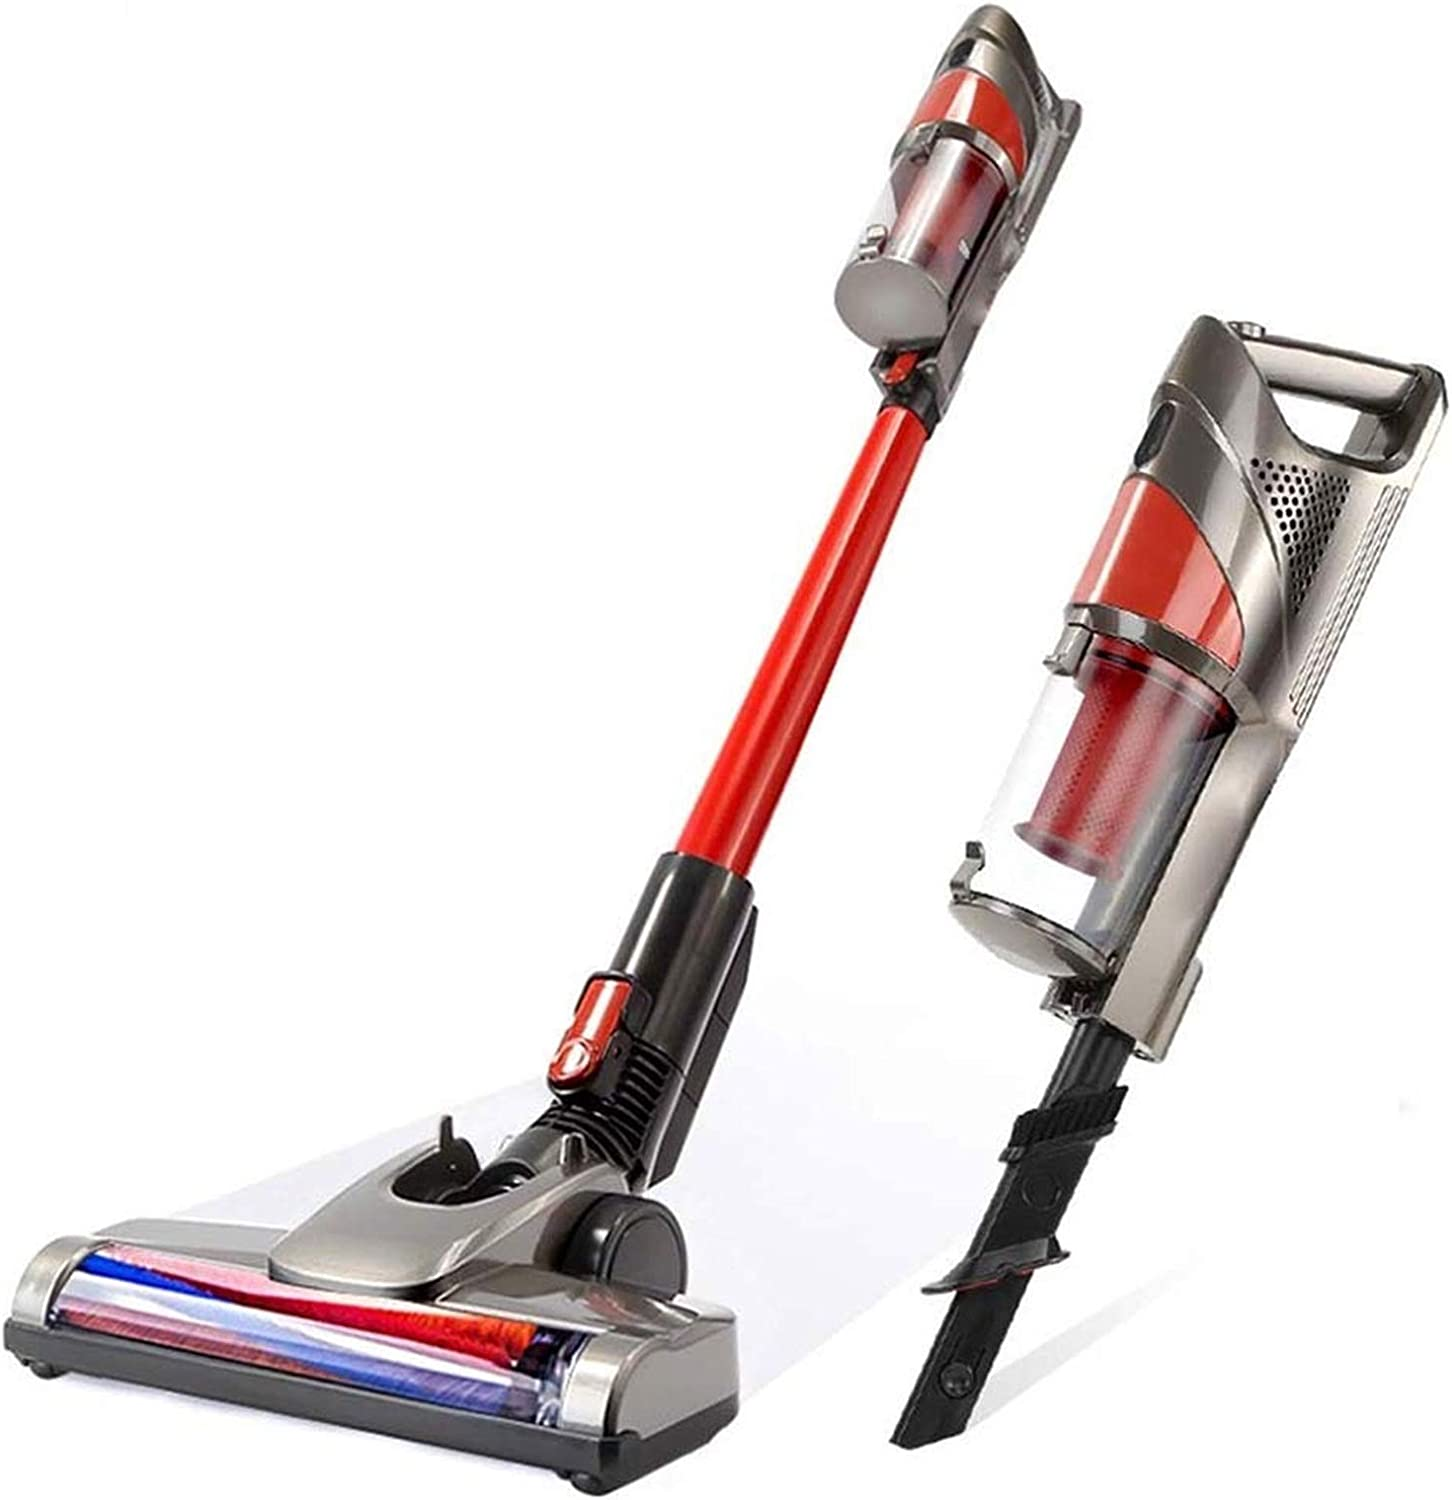 JTKDL Cordless Vacuum Stick Inventory cleanup selling sale Powerful Cleaning Max 43% OFF Cleaner L